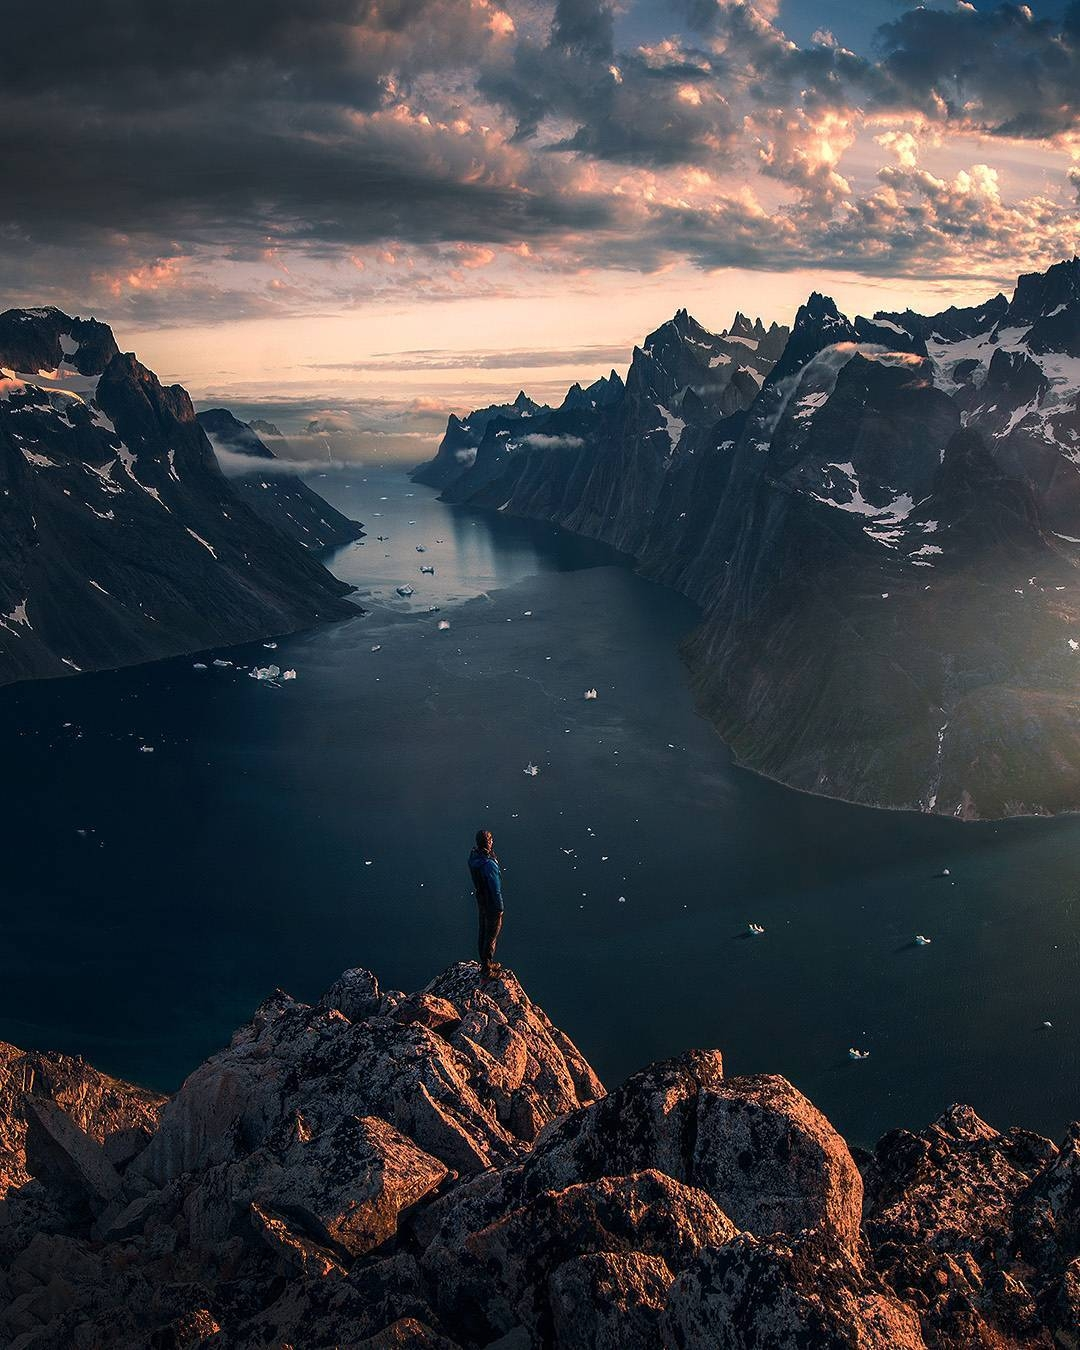 Spectacular Photography Max Riv - photogrist | ello